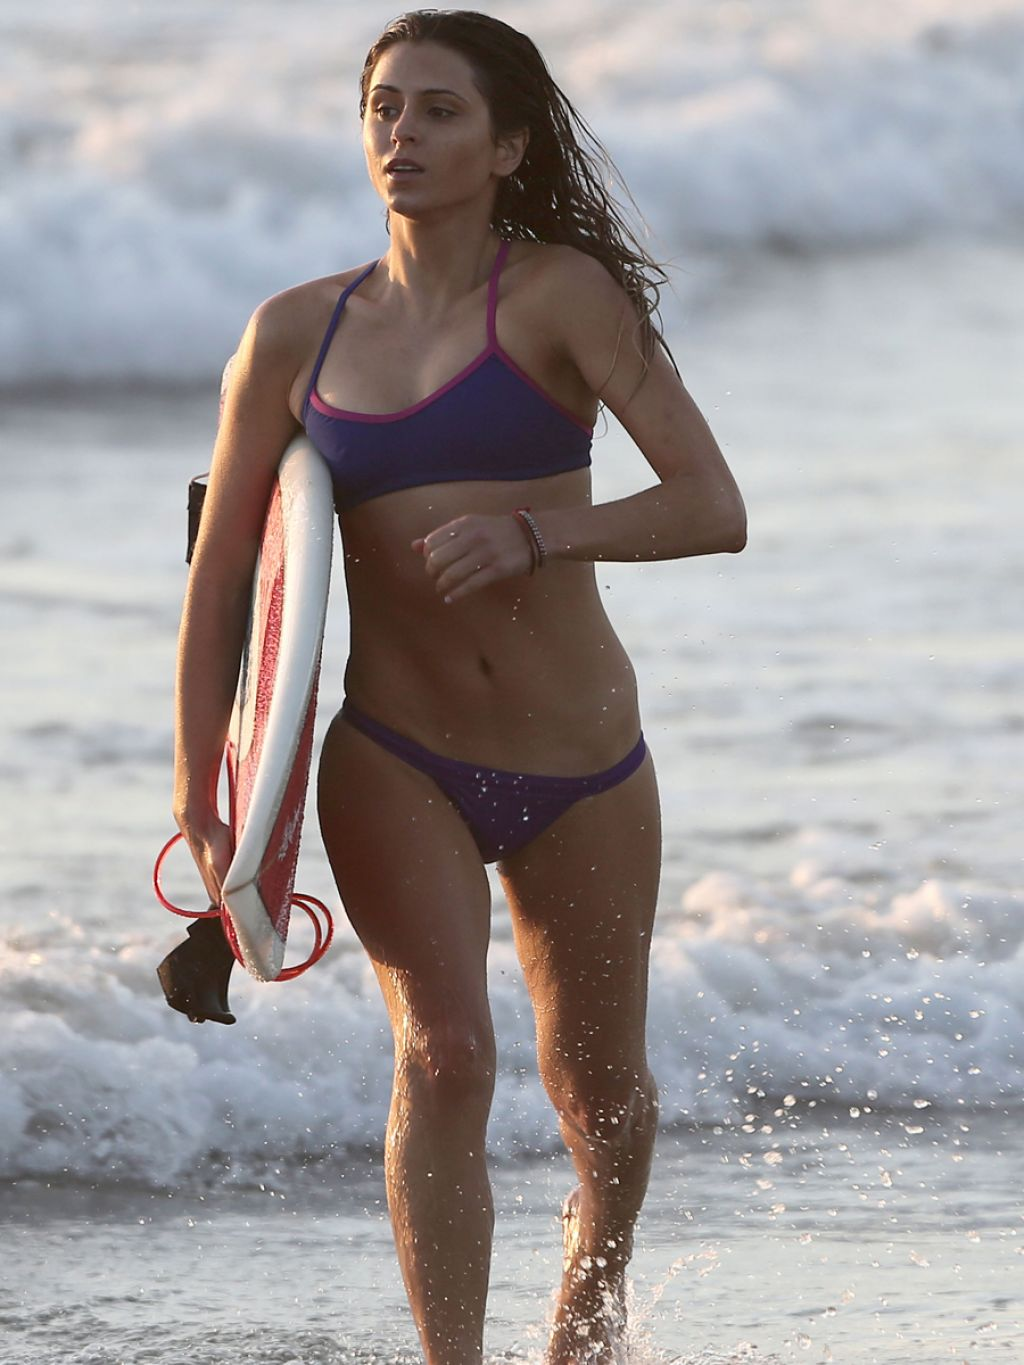 Anastasia Ashley Surfing in Bikini - Beach in Los Angeles, January 2014